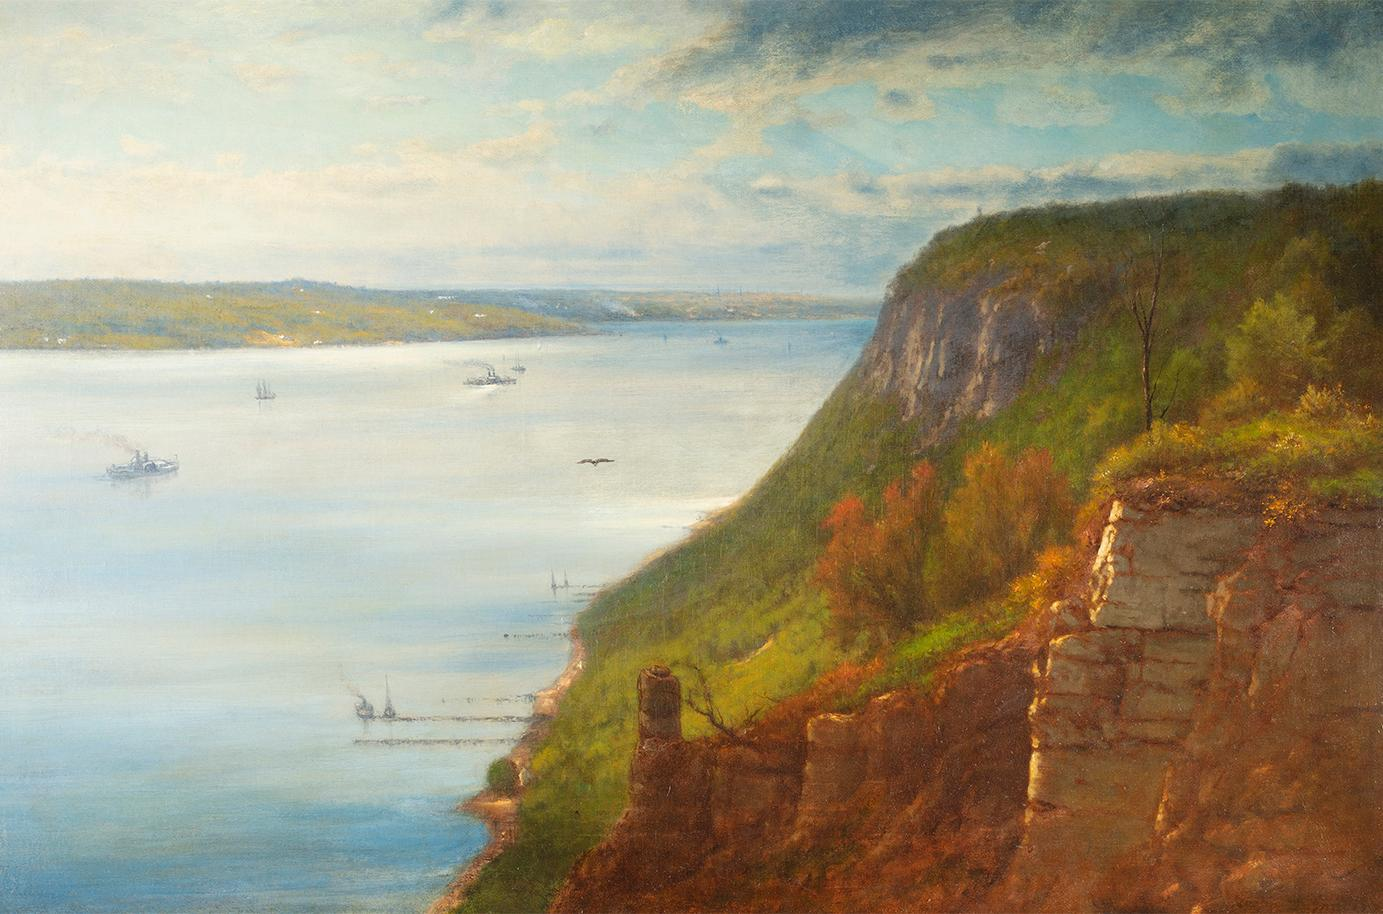 Palisades on the Hudson